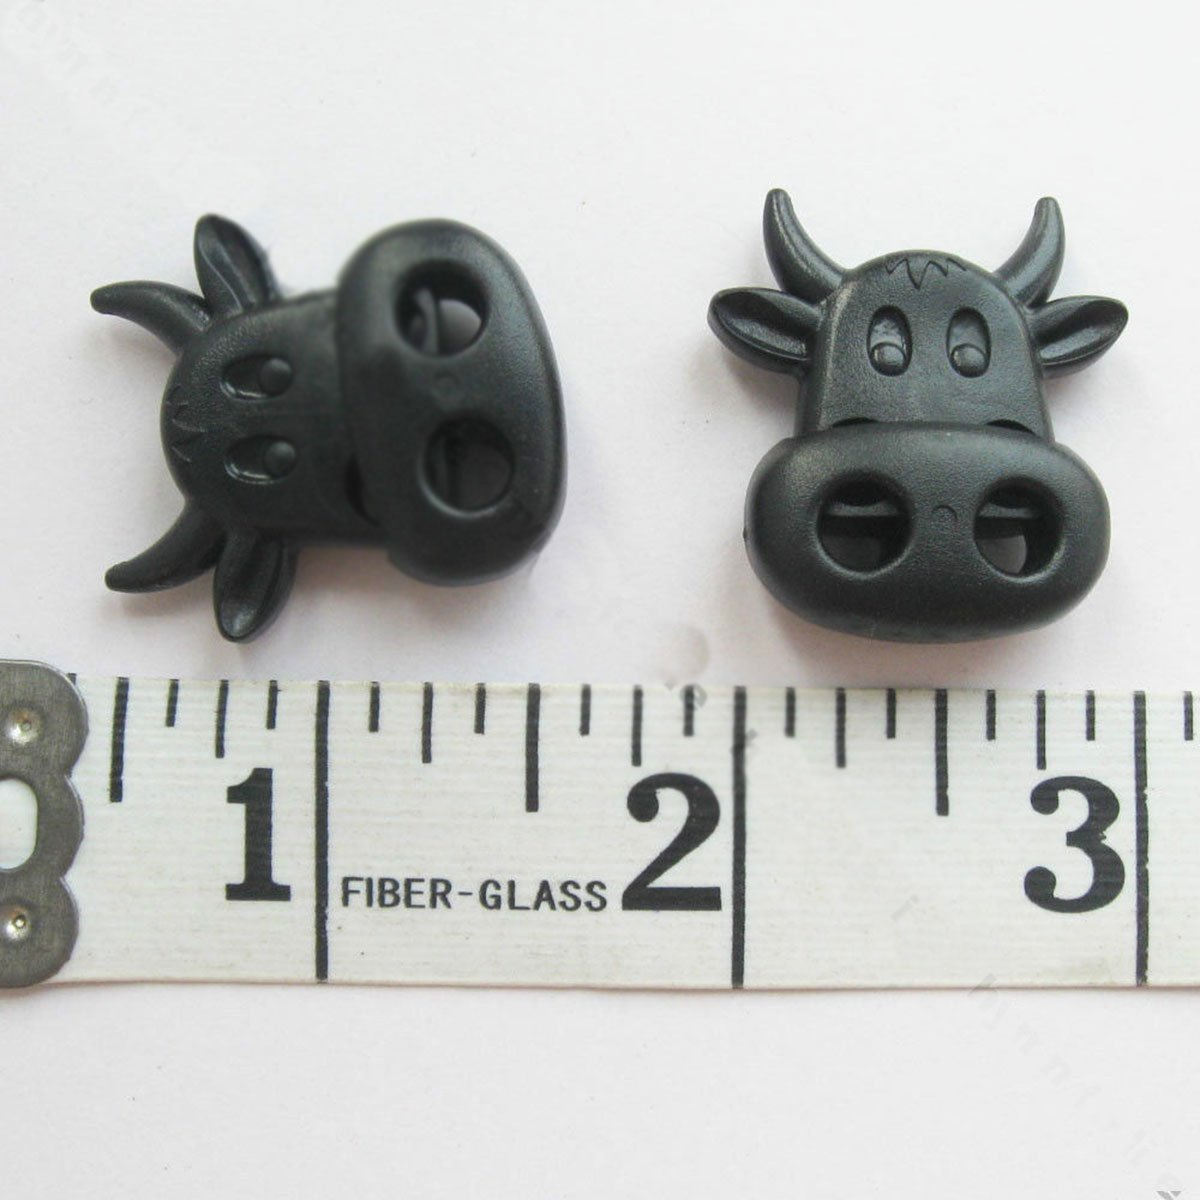 pawong Novelty Cow Twin Hole Toggles Cord Locks Rope stoppers, 50 pcs Black plastic pawong crafts ok png23